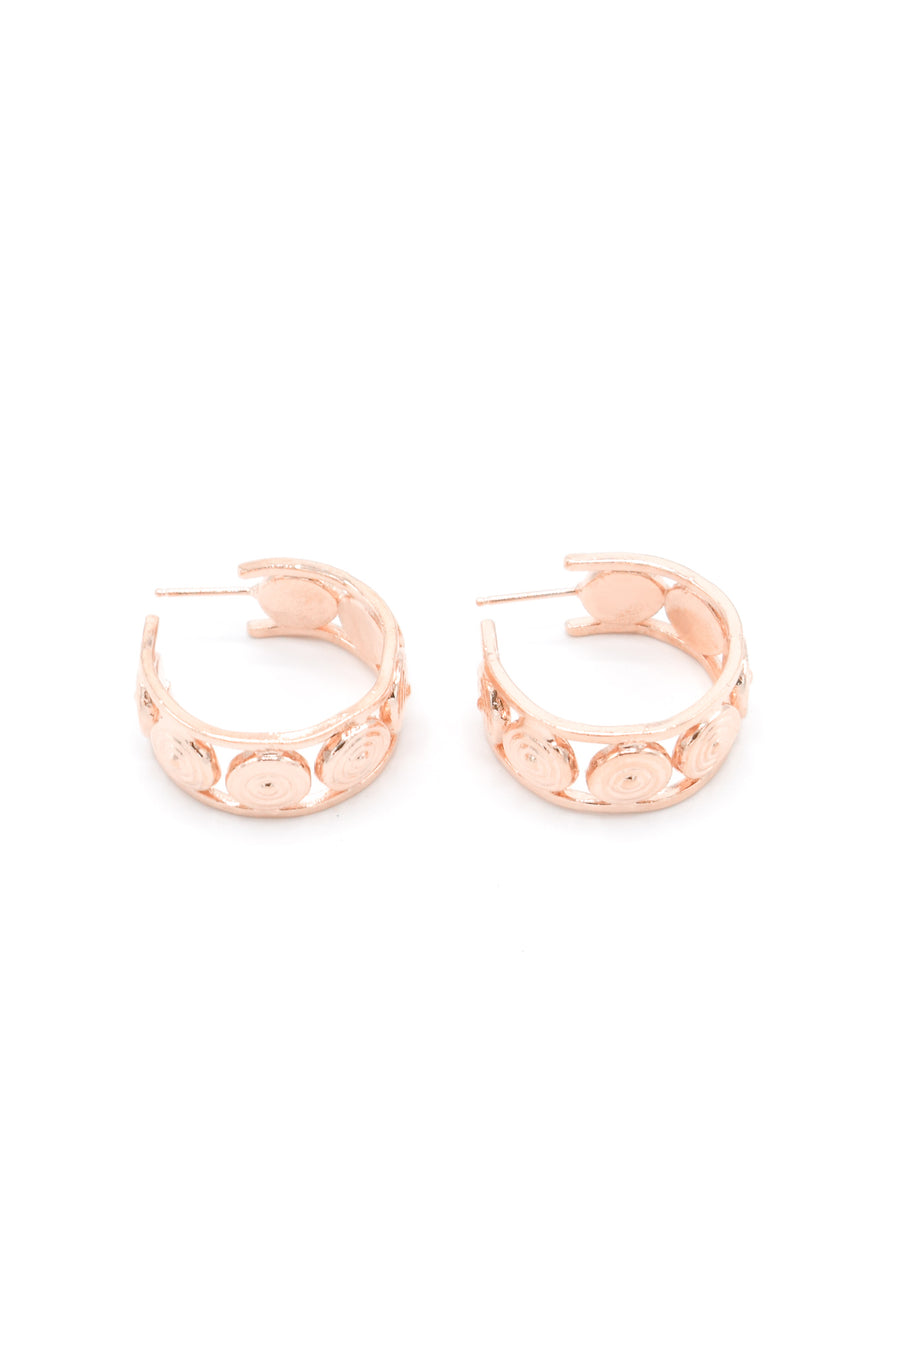 Aluna mini hoop earrings in 14k rose gold. Hoops with circular design and are 1 inch in diameter. Handmade by local jewelry designer, Nina Berenato, in Austin, Texas.